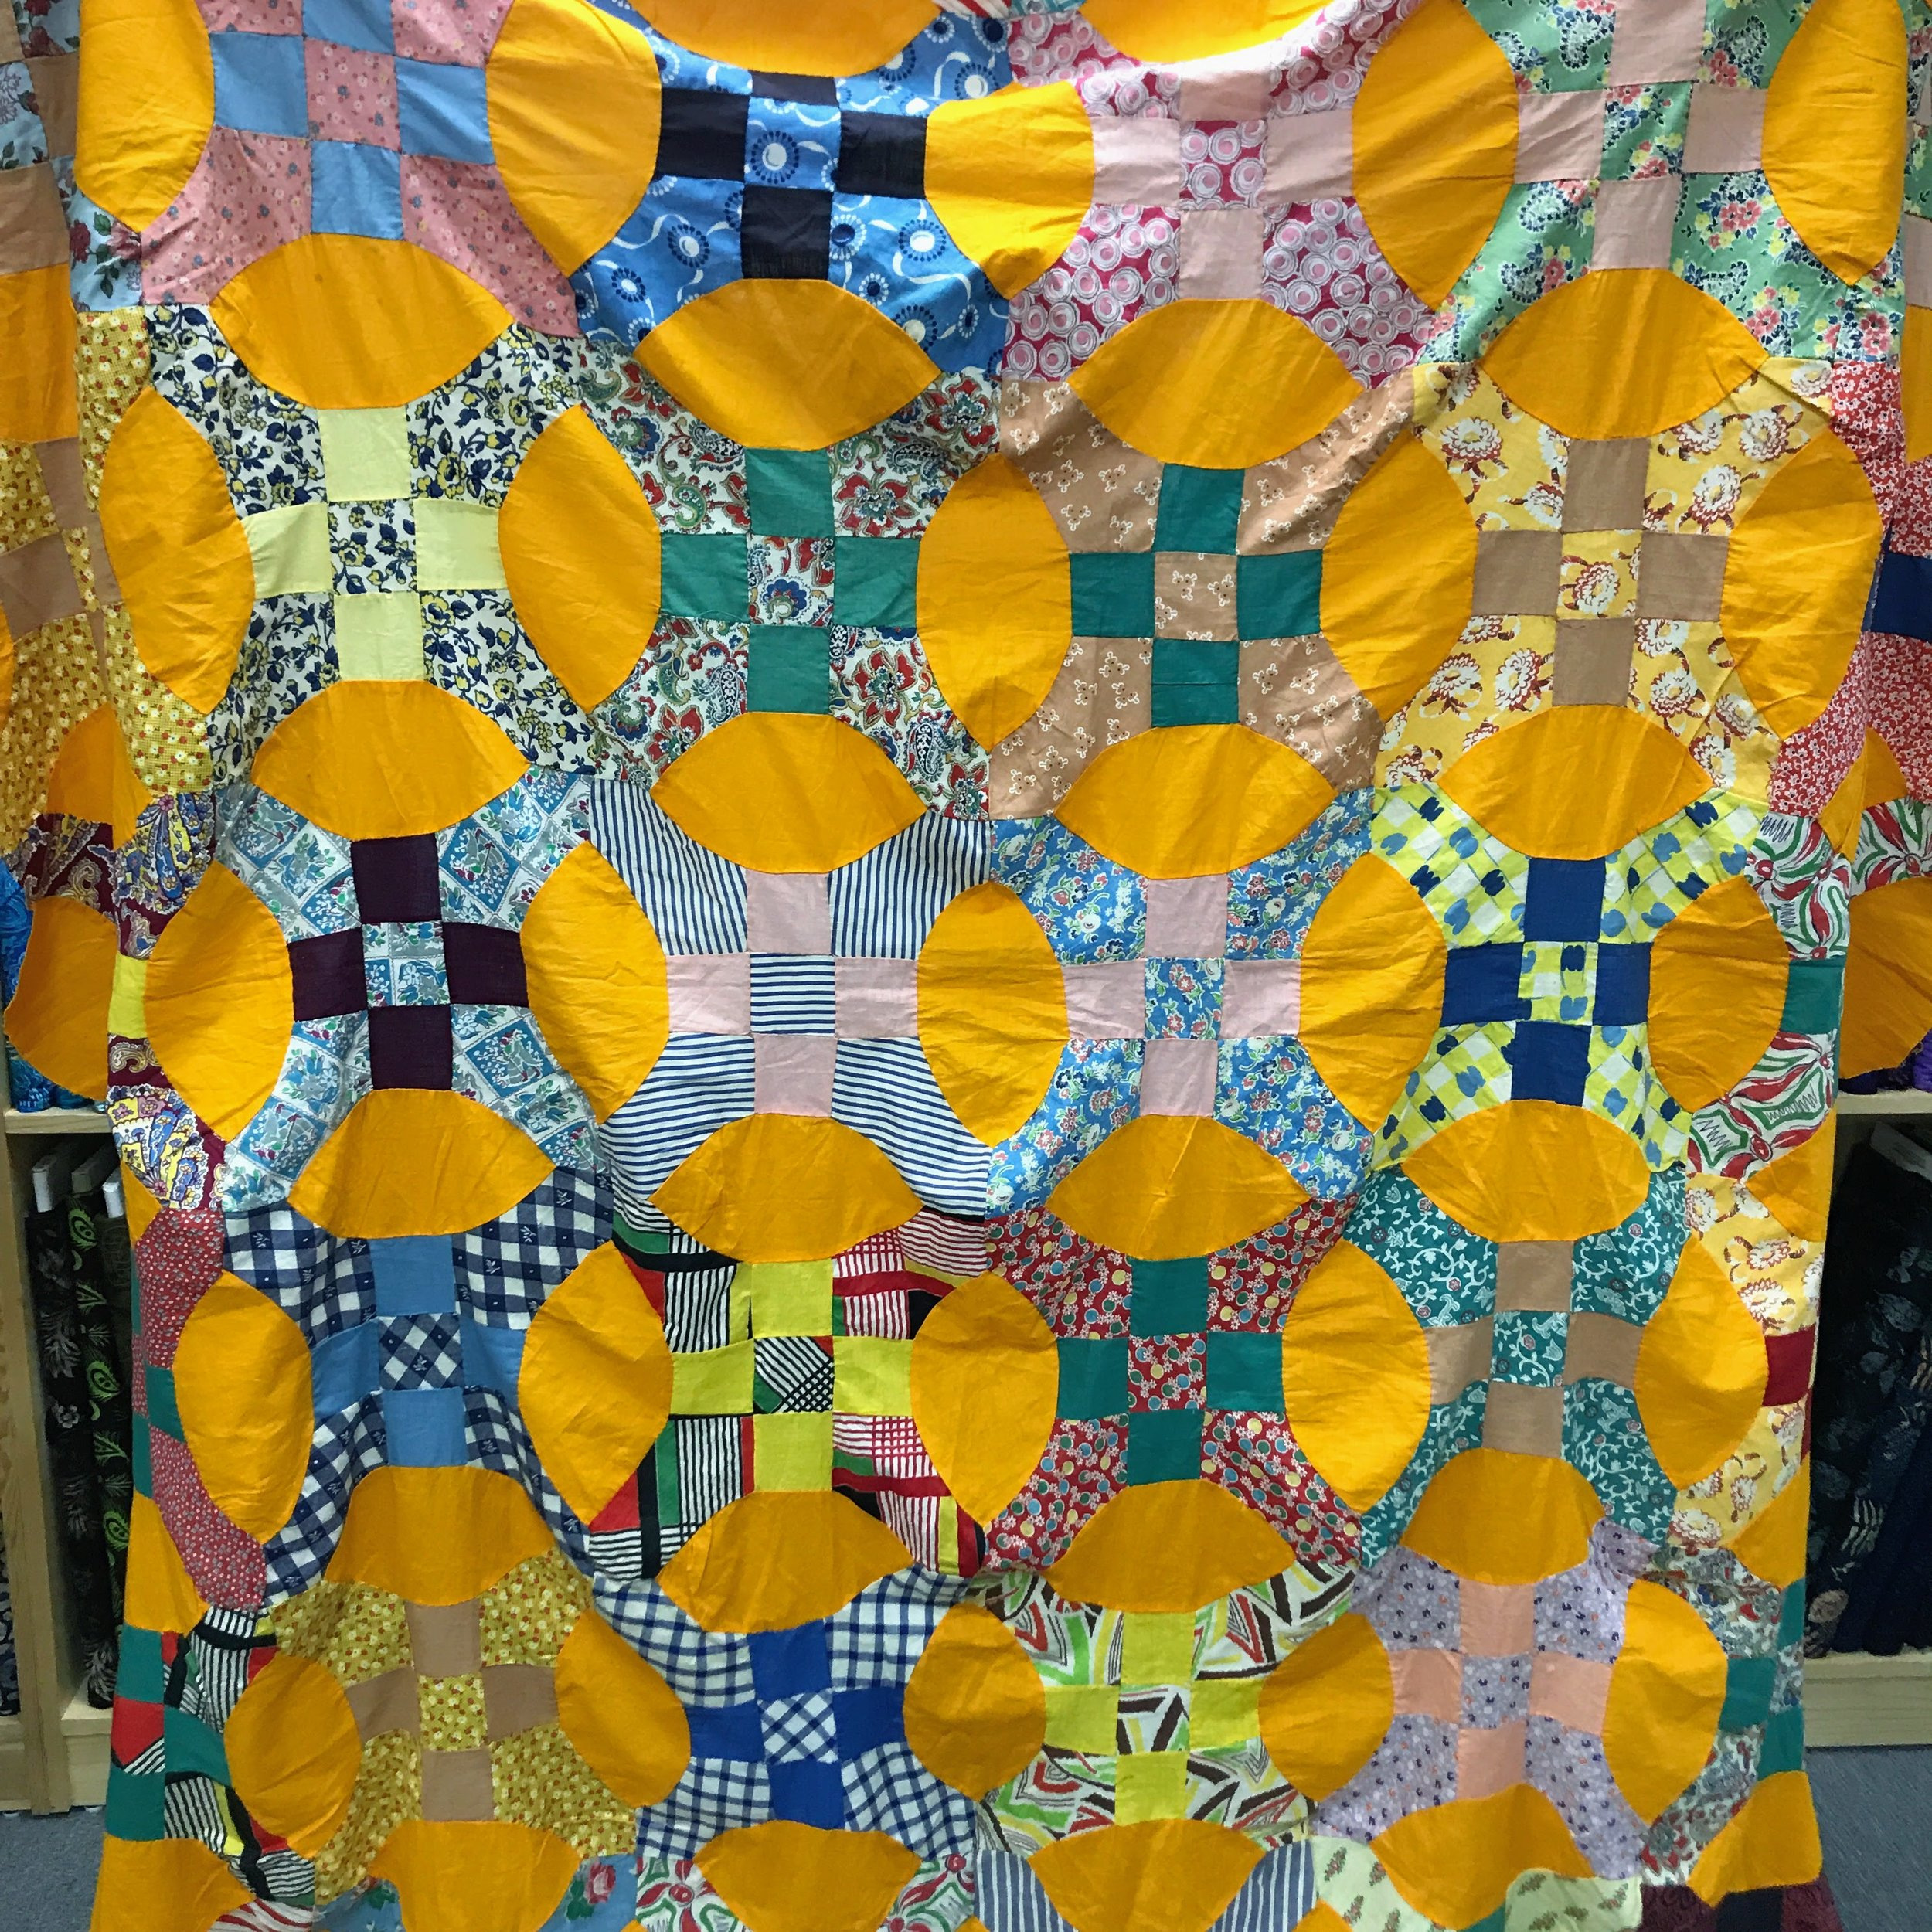 Kelly found this delicious cheddar quilt top on Etsy.